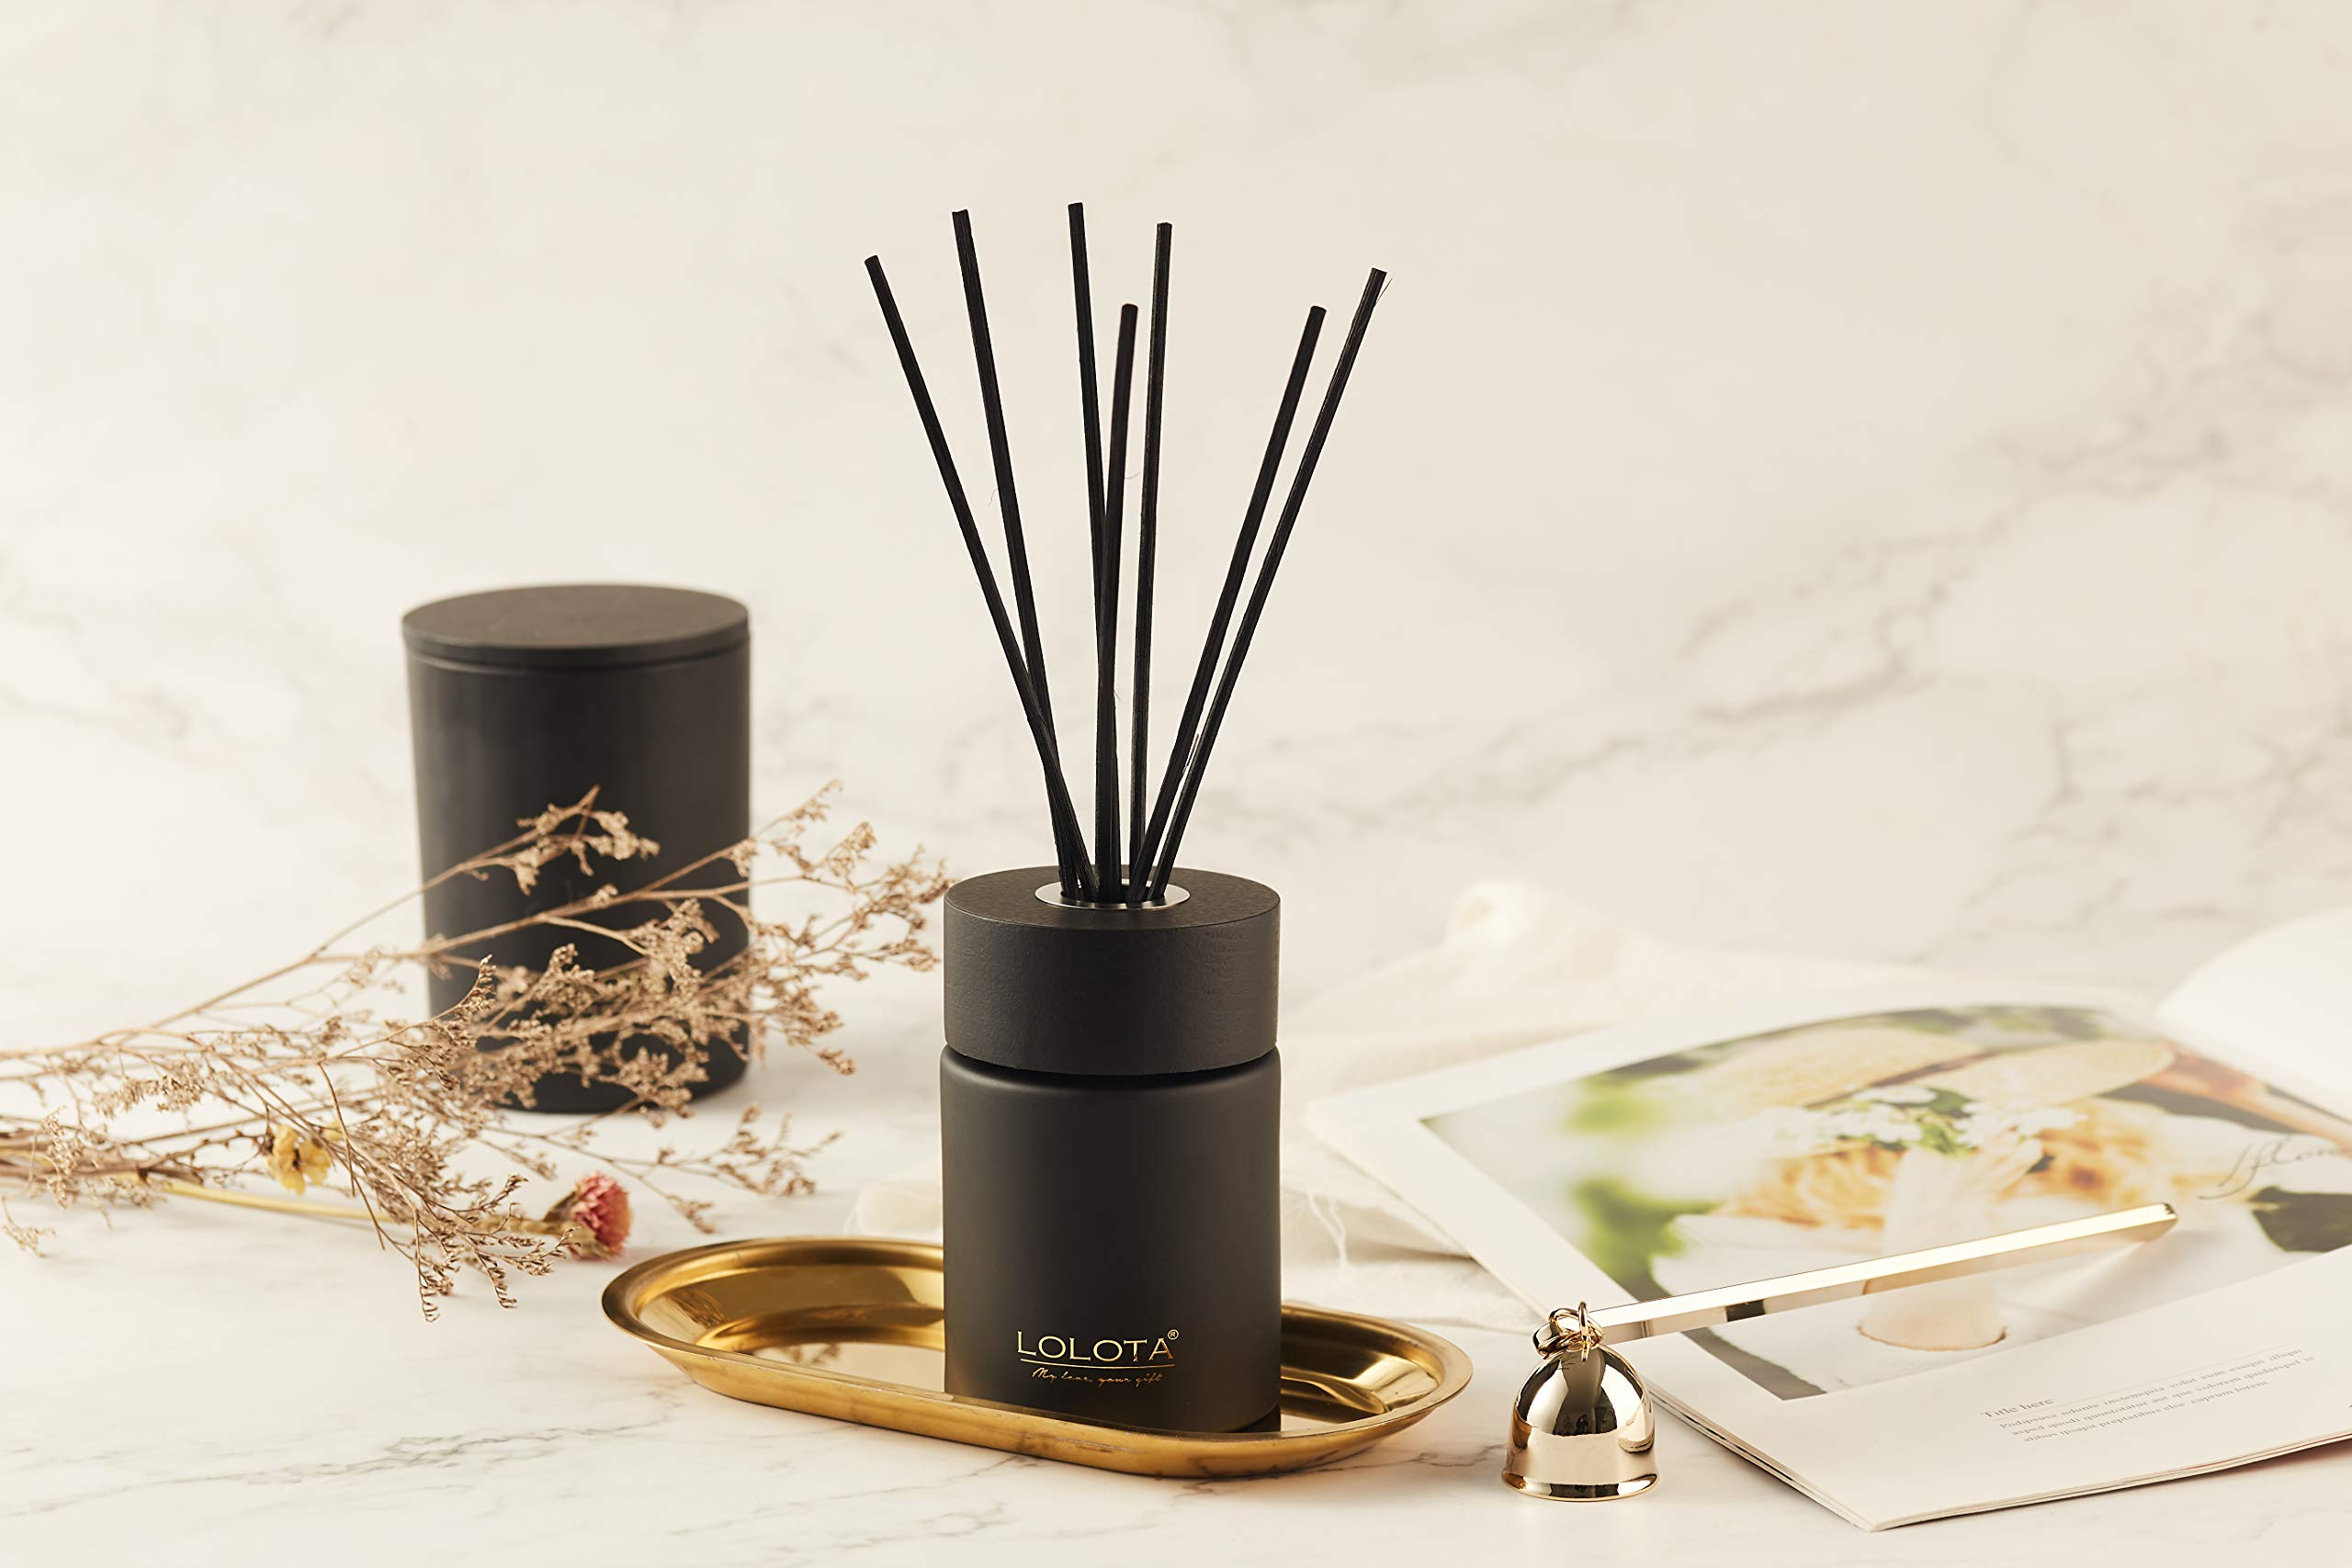 LALATA Fragrance Reed Diffuser Essential Oil Coconut Mango Amber Scent in Gift Box,Natural Scented Long Lasting Fragrance Oil for Aromatherapy and Air Freshener by LALATA (Image #4)